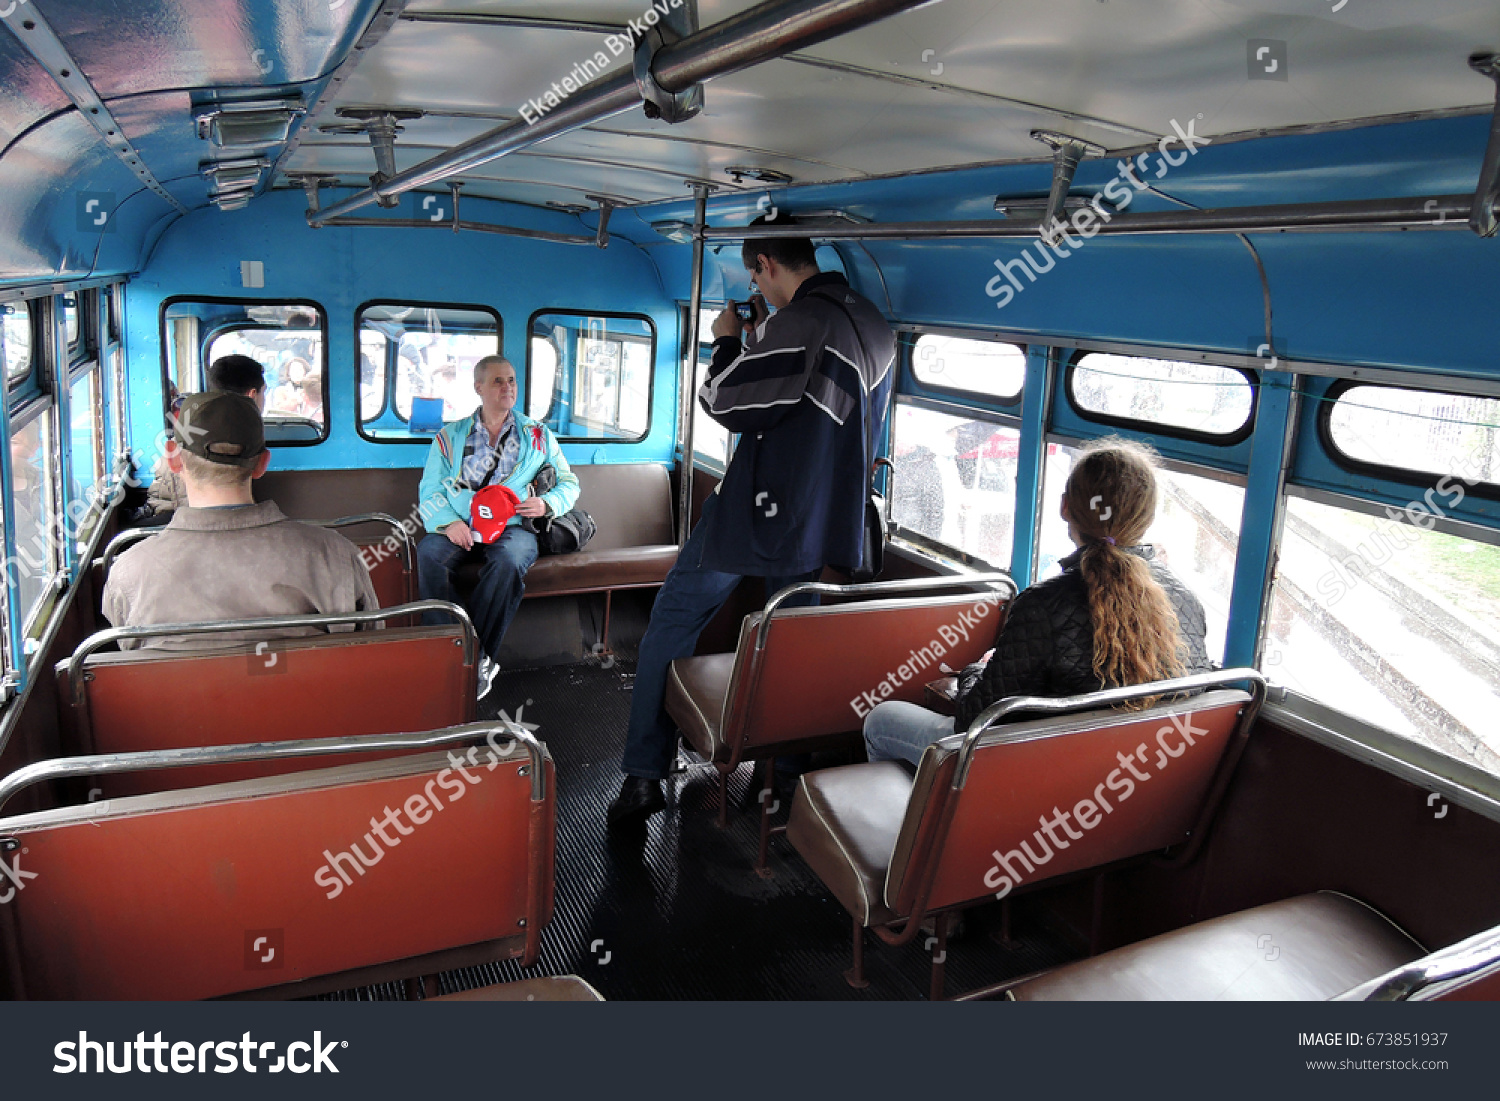 Moscow Transport Day